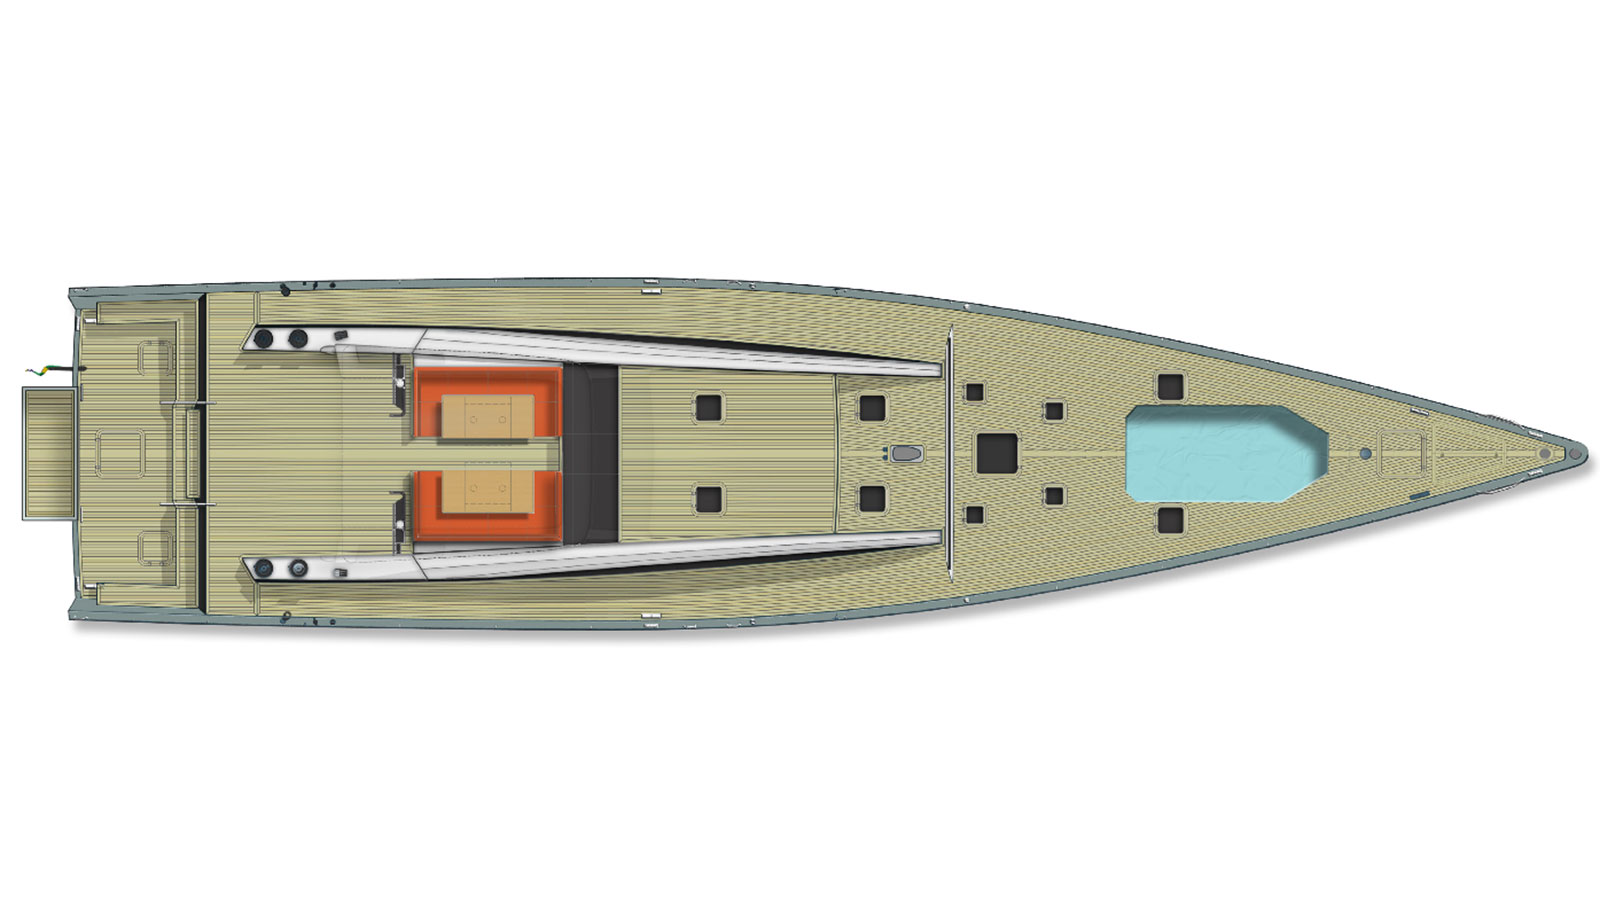 Silver Bullet 100 exterior layout